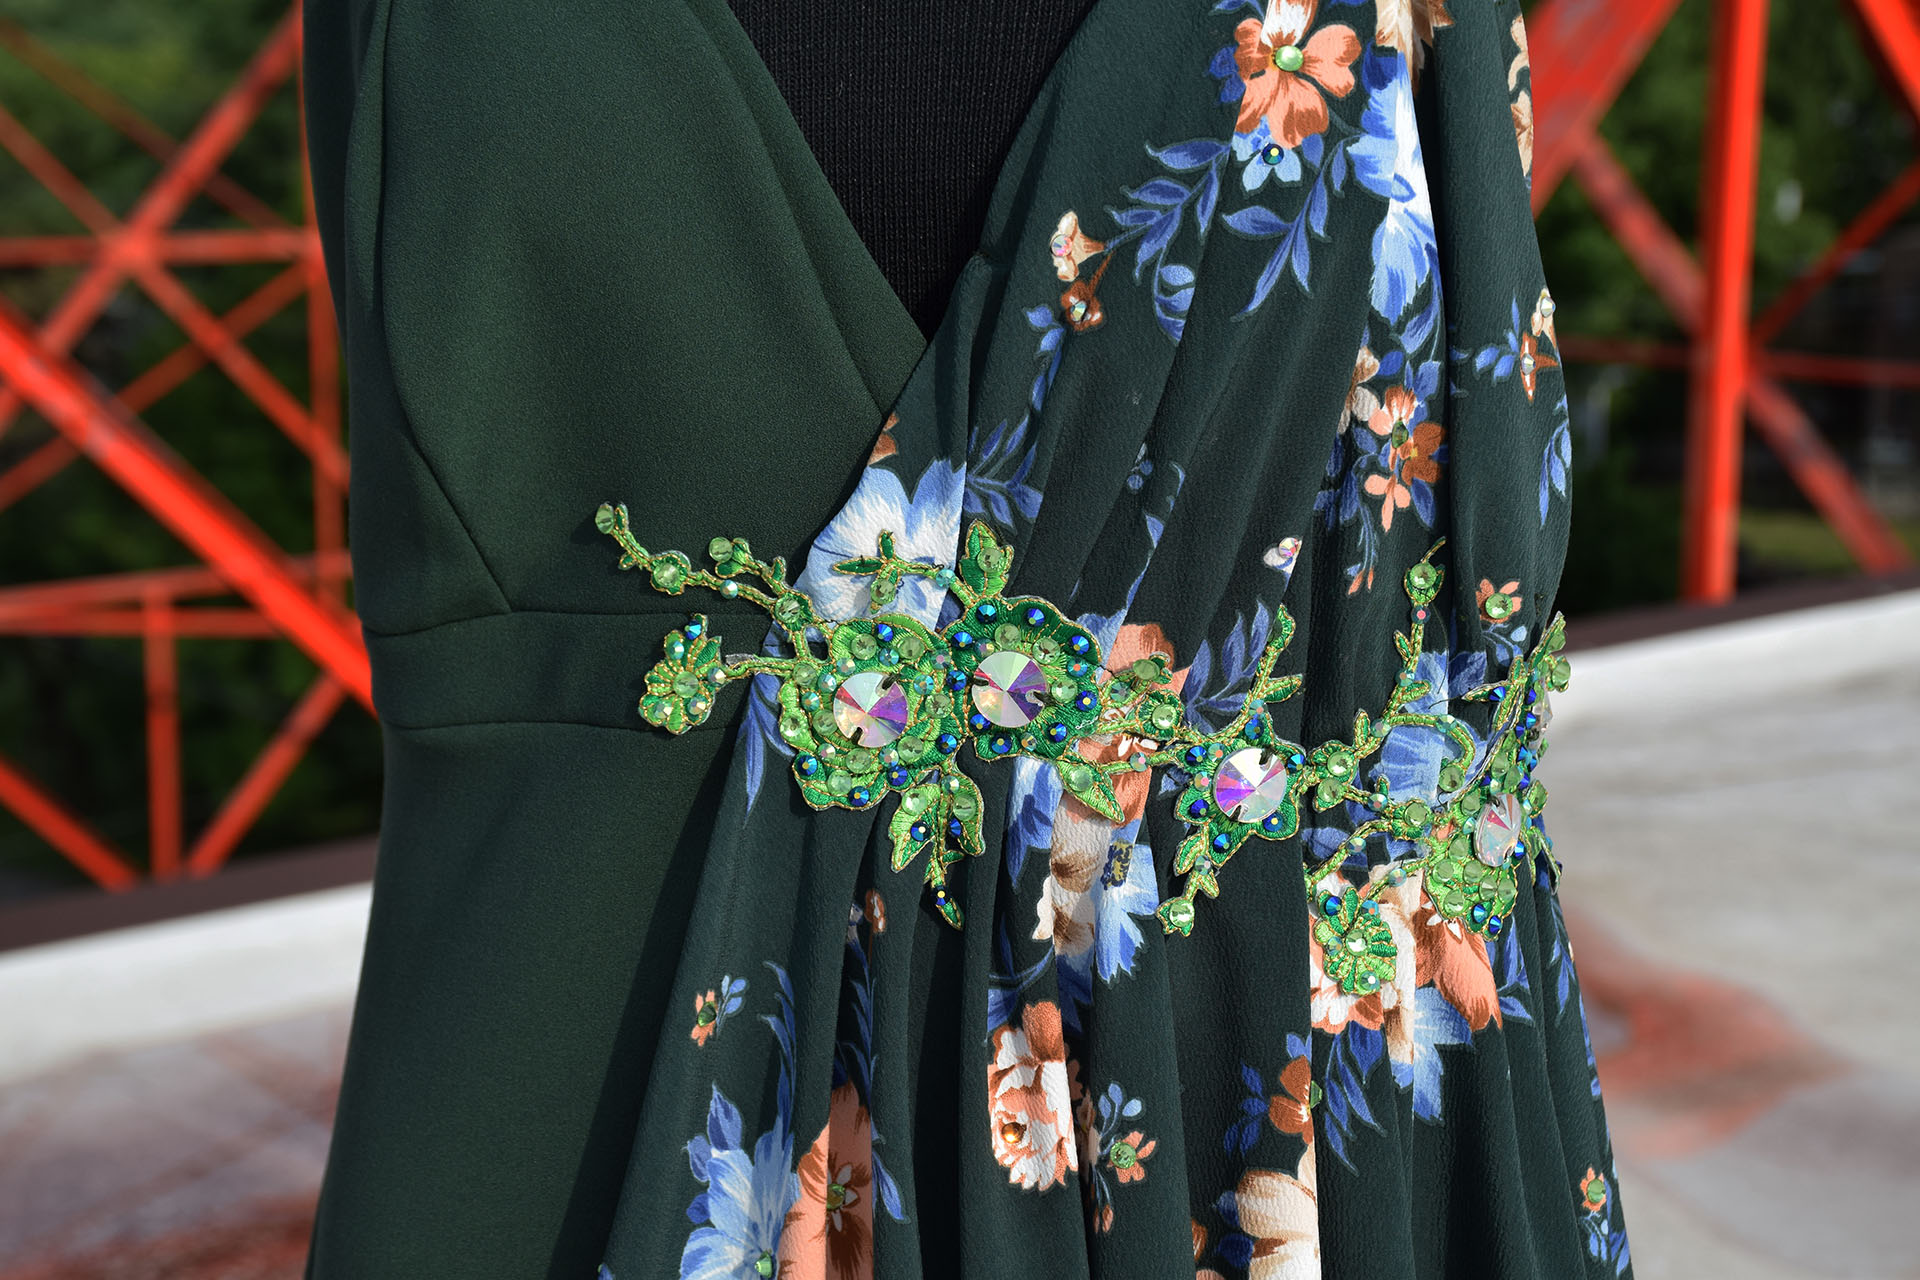 Green dress detail